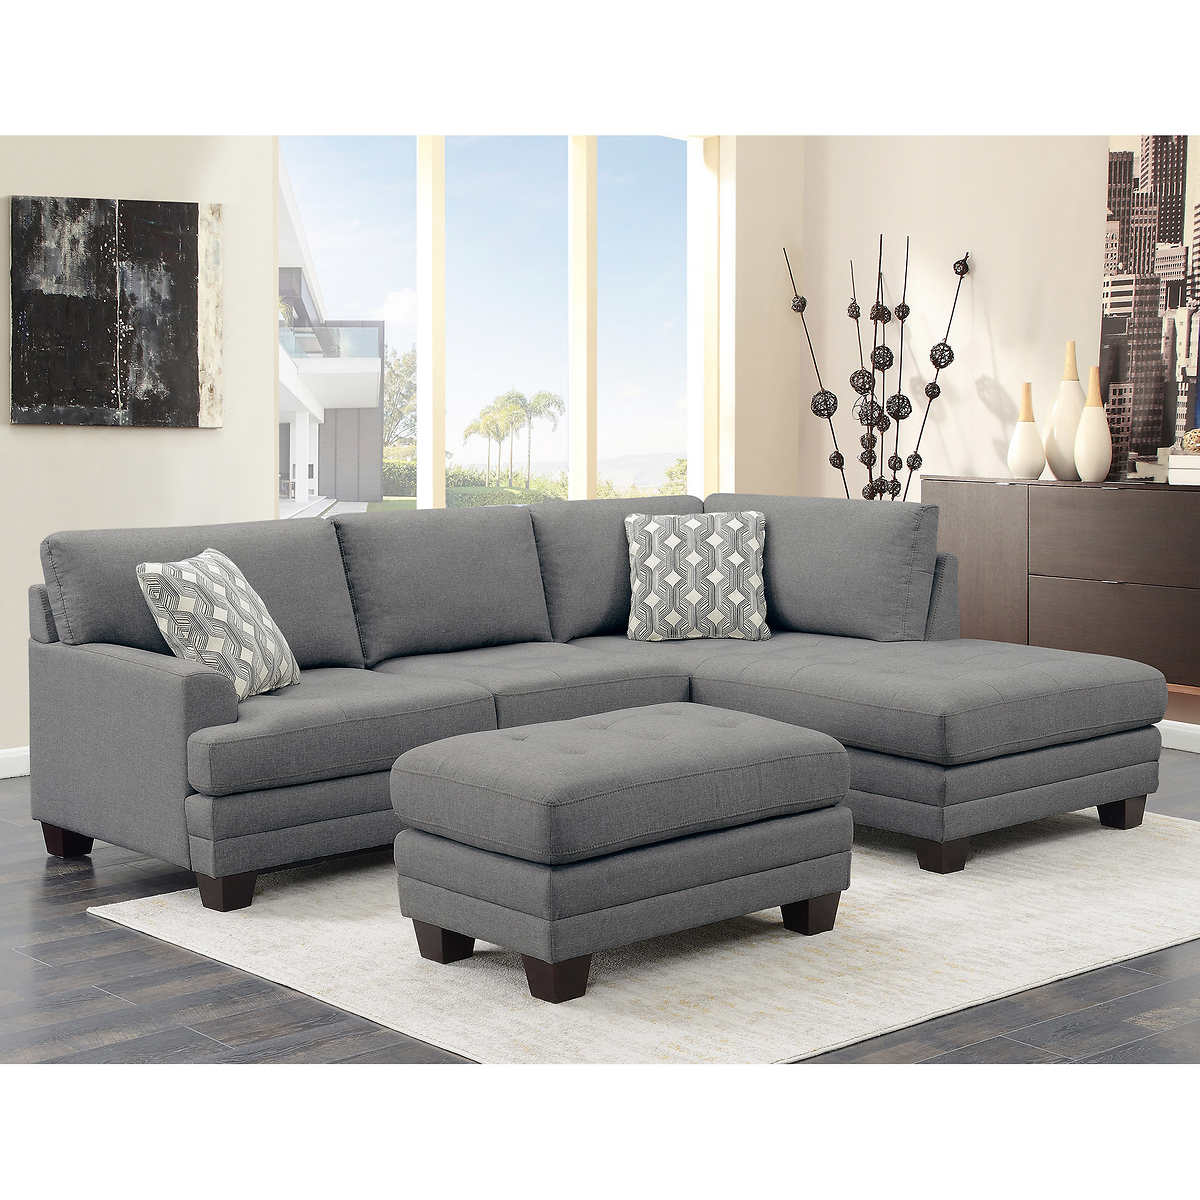 buy popular c7153 8fe19 Mitch Fabric Sectional with Ottoman